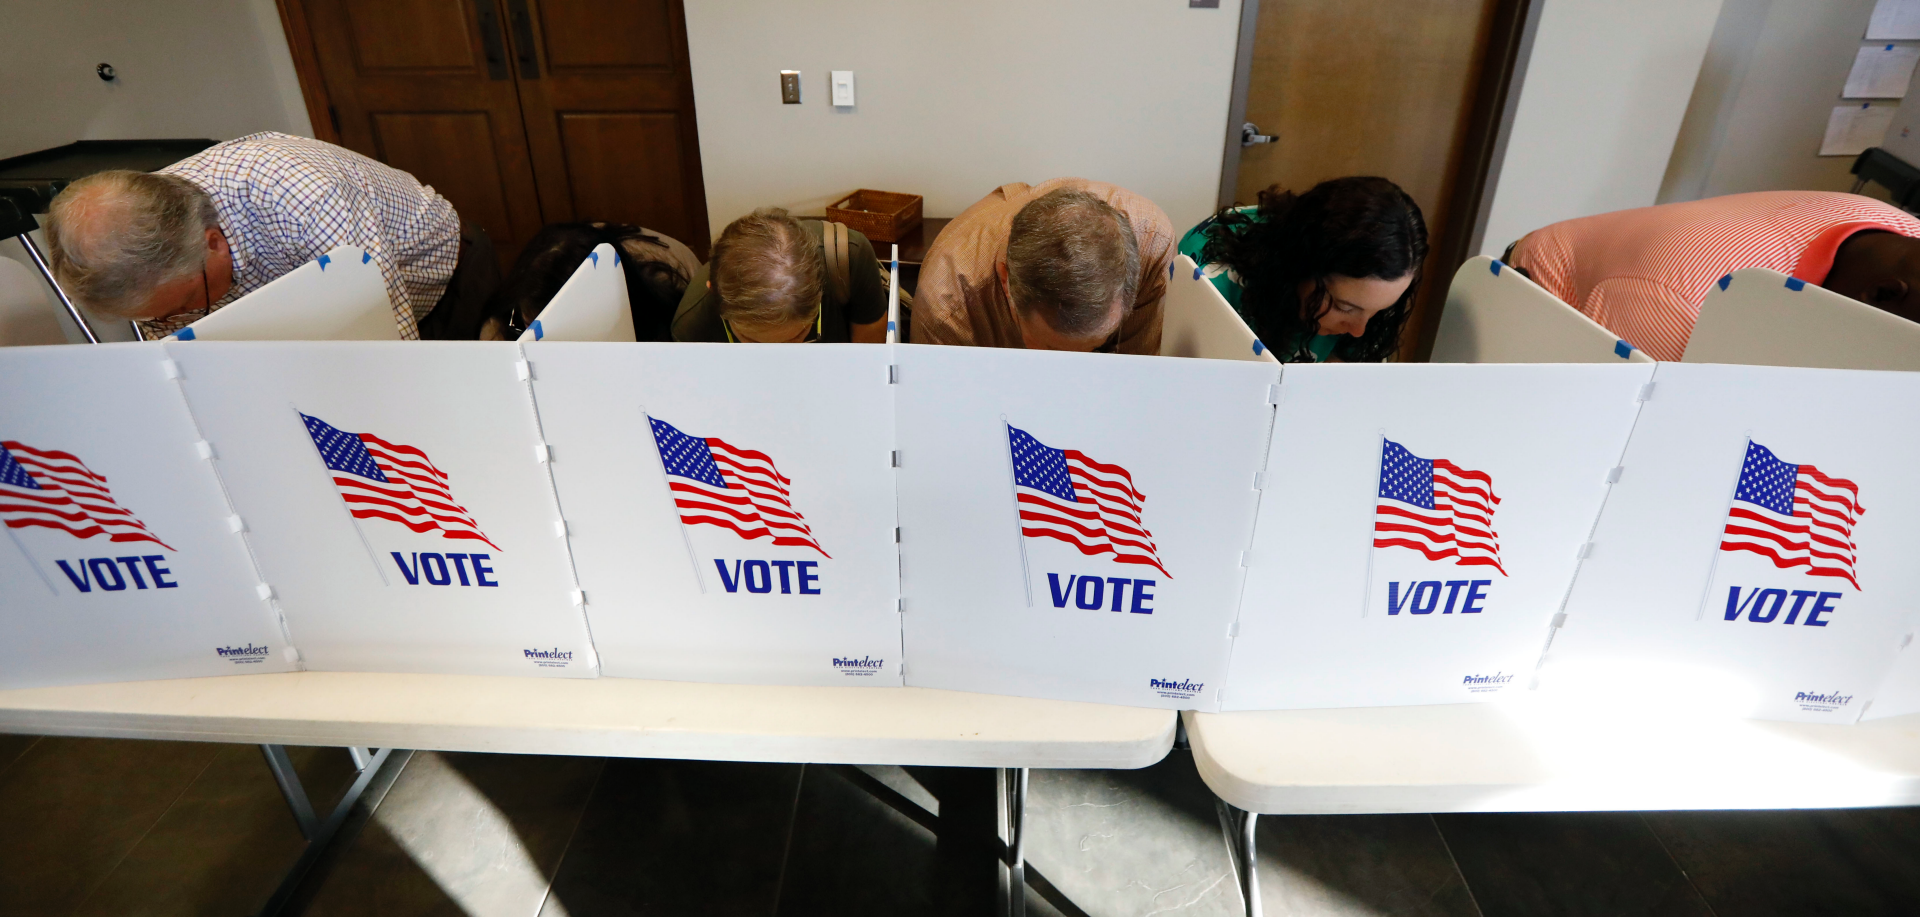 Westlake Legal Group ContentBroker_contentid-9eda561303af4b1592541bb29a2ae7ba Steve Levy: We can easily prevent election hacking by Russia or anyone else – Here's how Steve Levy fox-news/politics/elections fox-news/politics/2020-presidential-election fox-news/opinion fox news fnc/opinion fnc article 24a0db4d-2f24-5130-91d6-75cf340140a3